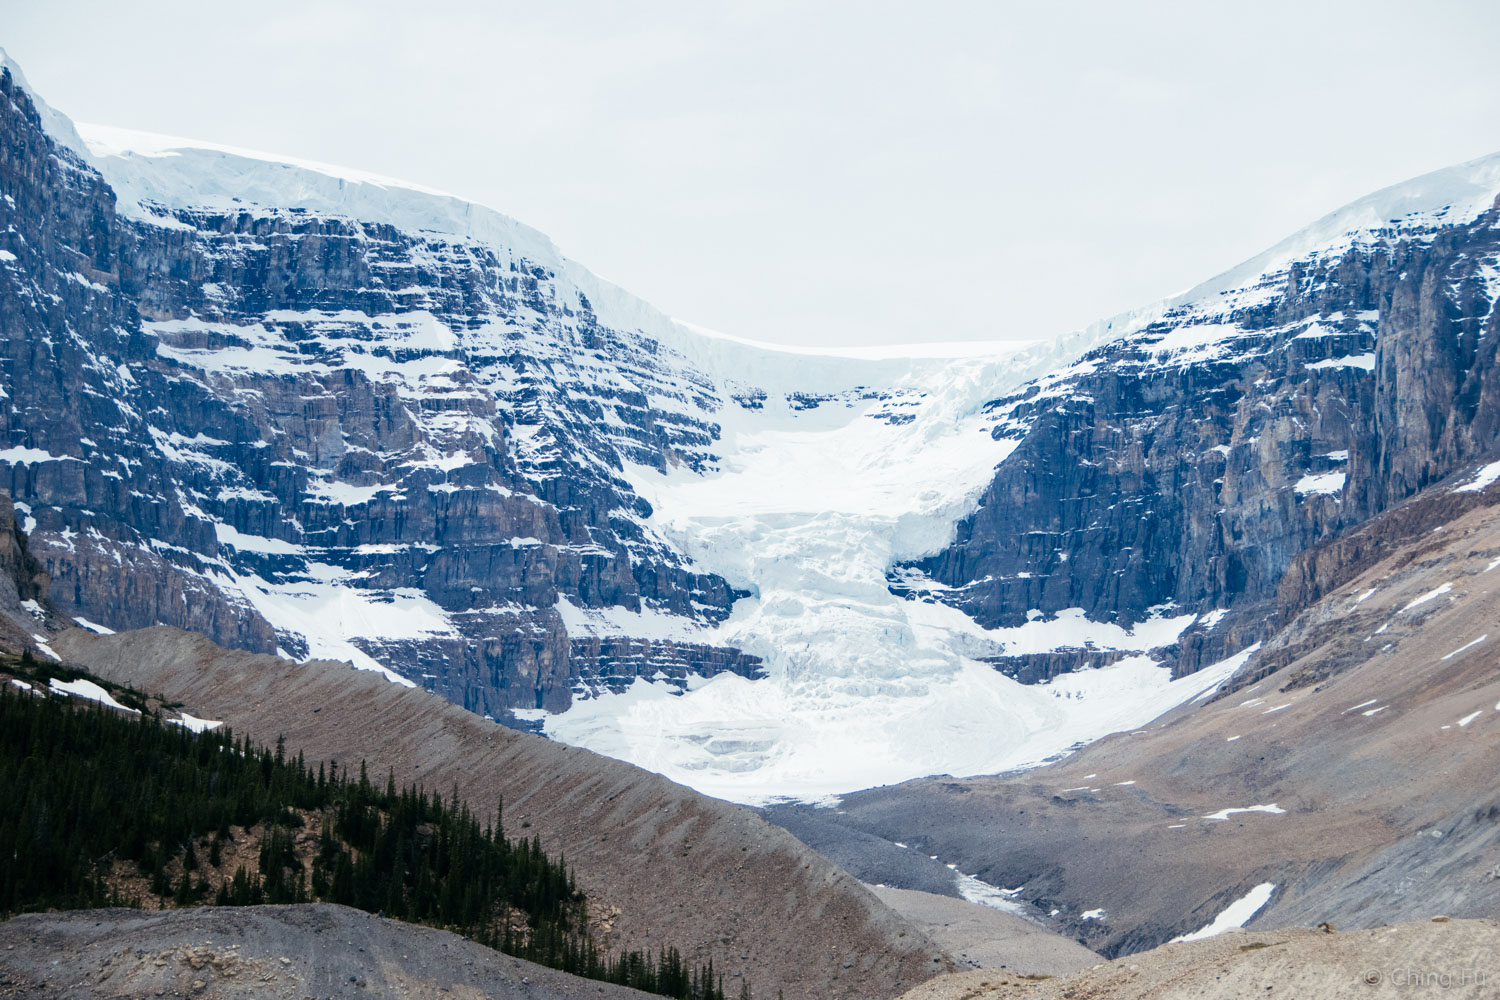 Field of the Columbia Icefield seen from Wilcox Pass trail on this trip.